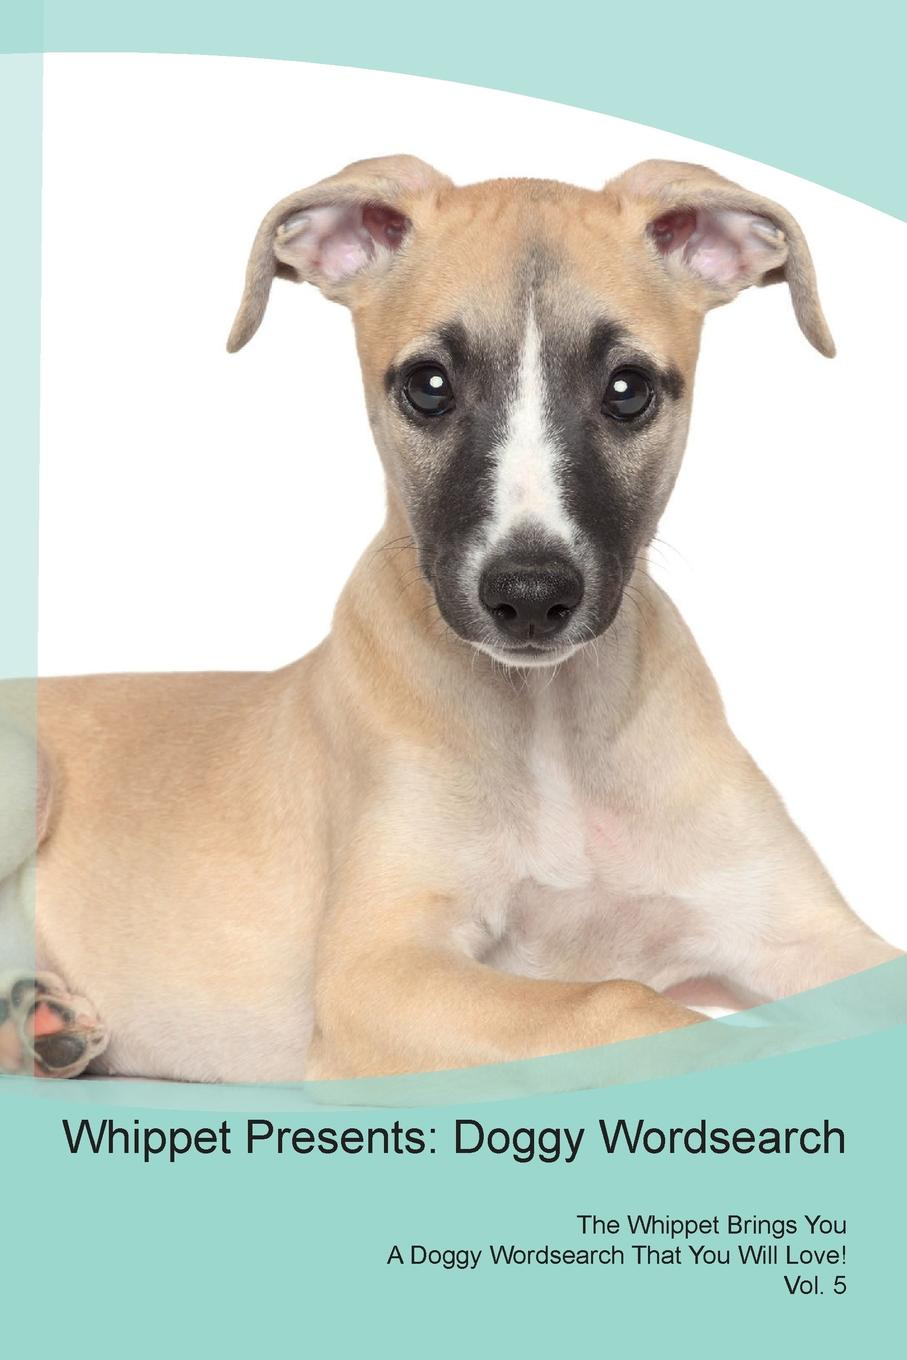 Doggy Puzzles Whippet Presents. Wordsearch The Brings You A That Will Love! Vol. 5